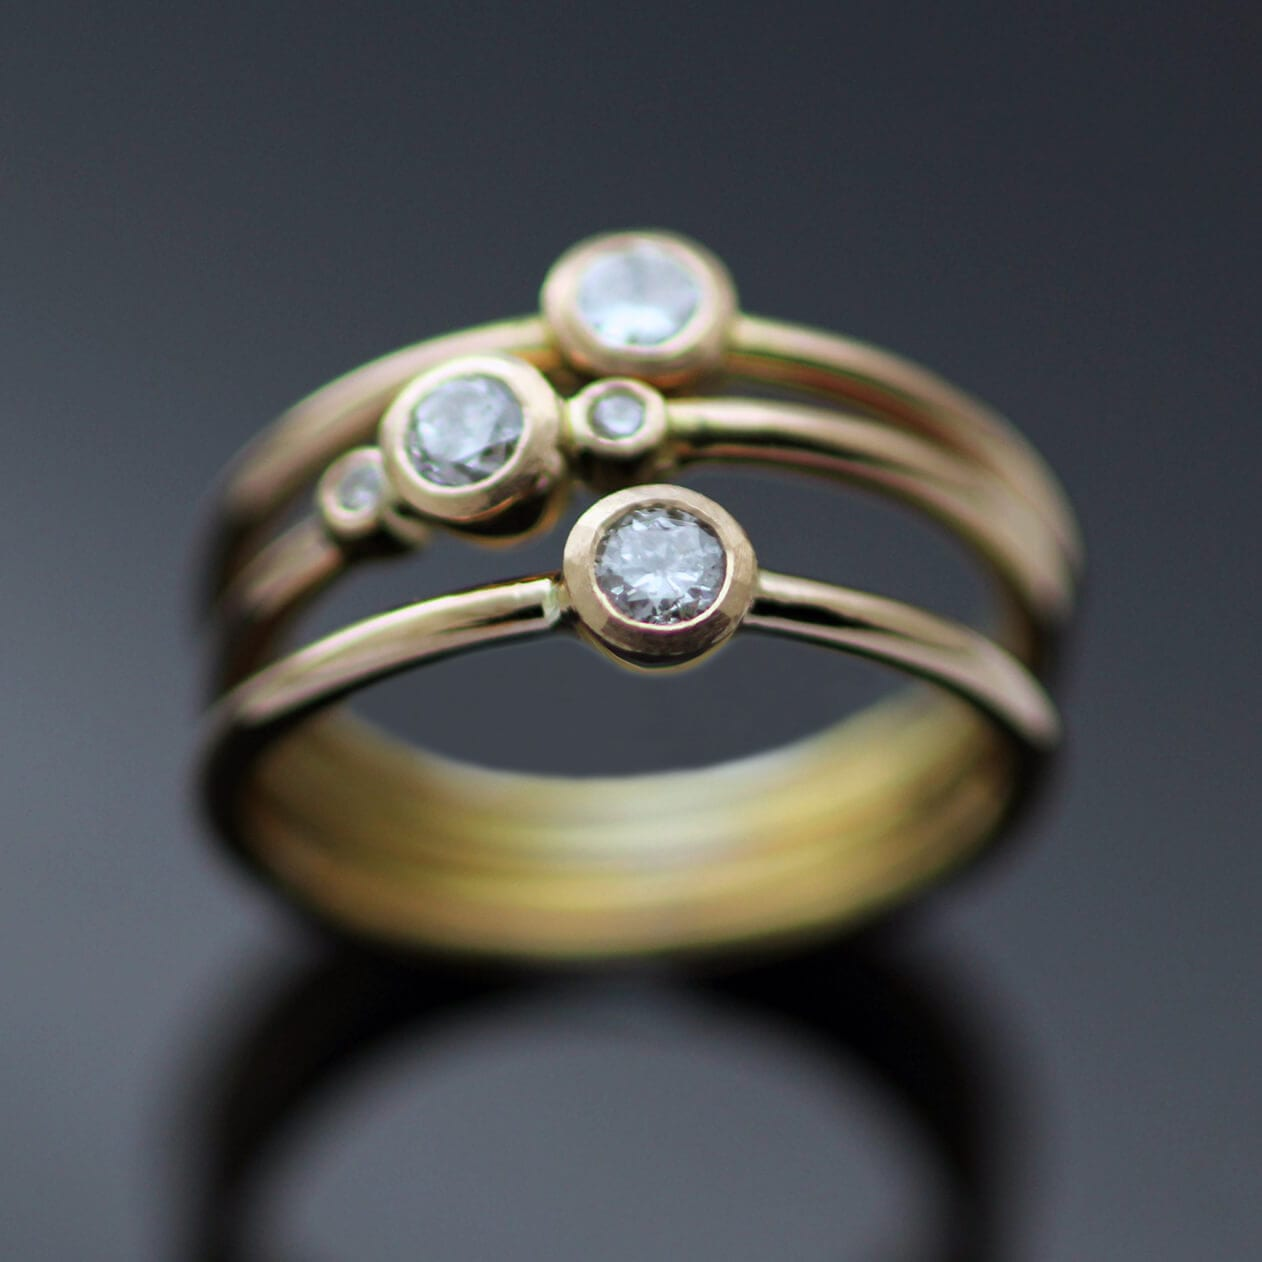 Handmade bespoke stacking engagement rings Rose Gold Diamonds